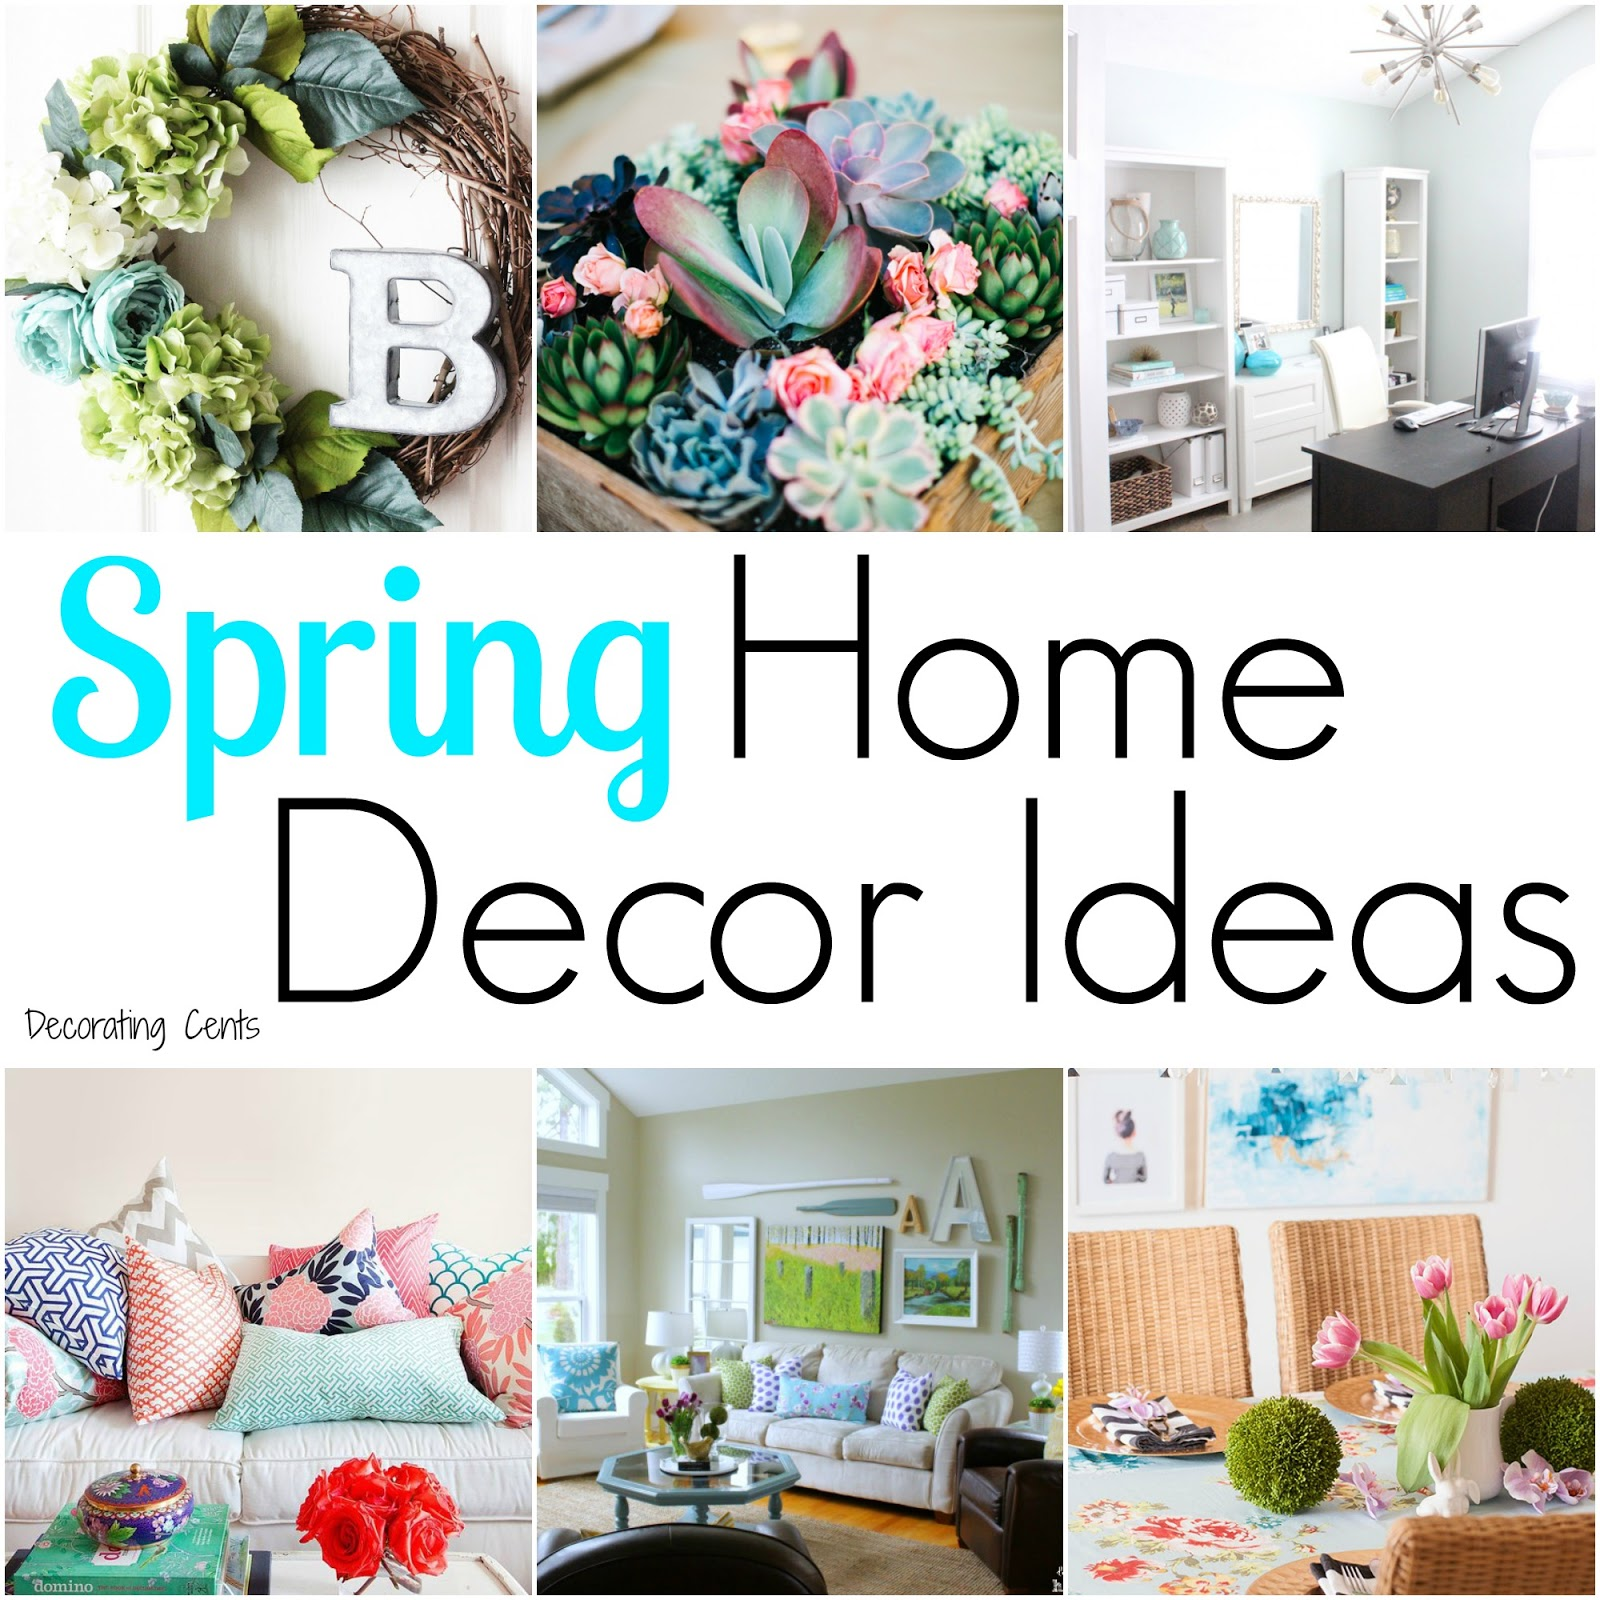 Decorating cents spring home decor ideas for Home decor ideas